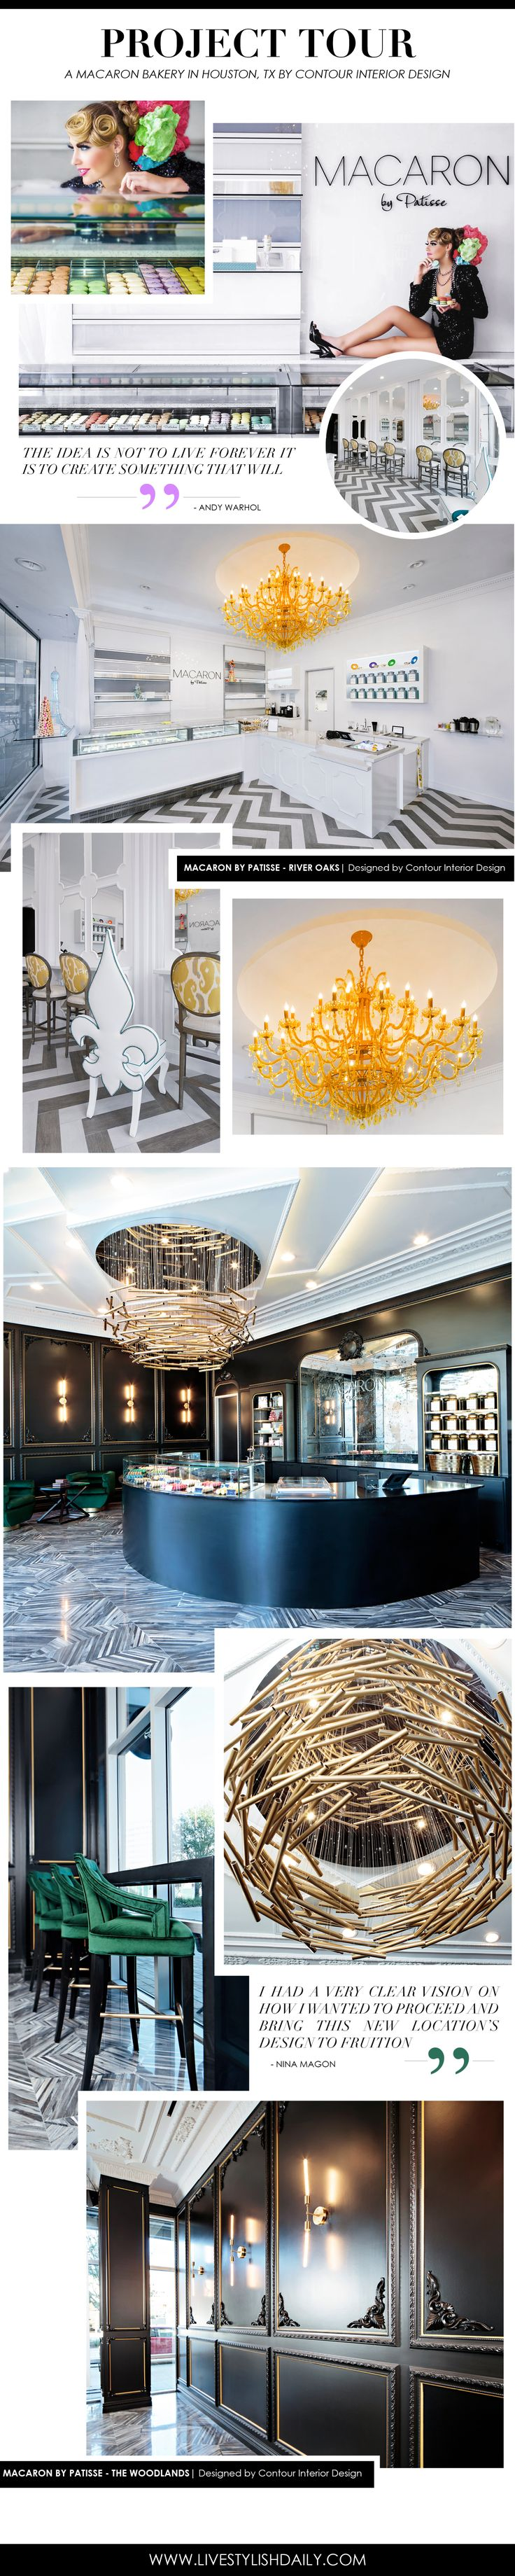 PROJECT TOUR A Macaron Bakery Designed By Contour Interior Design Located In Houston